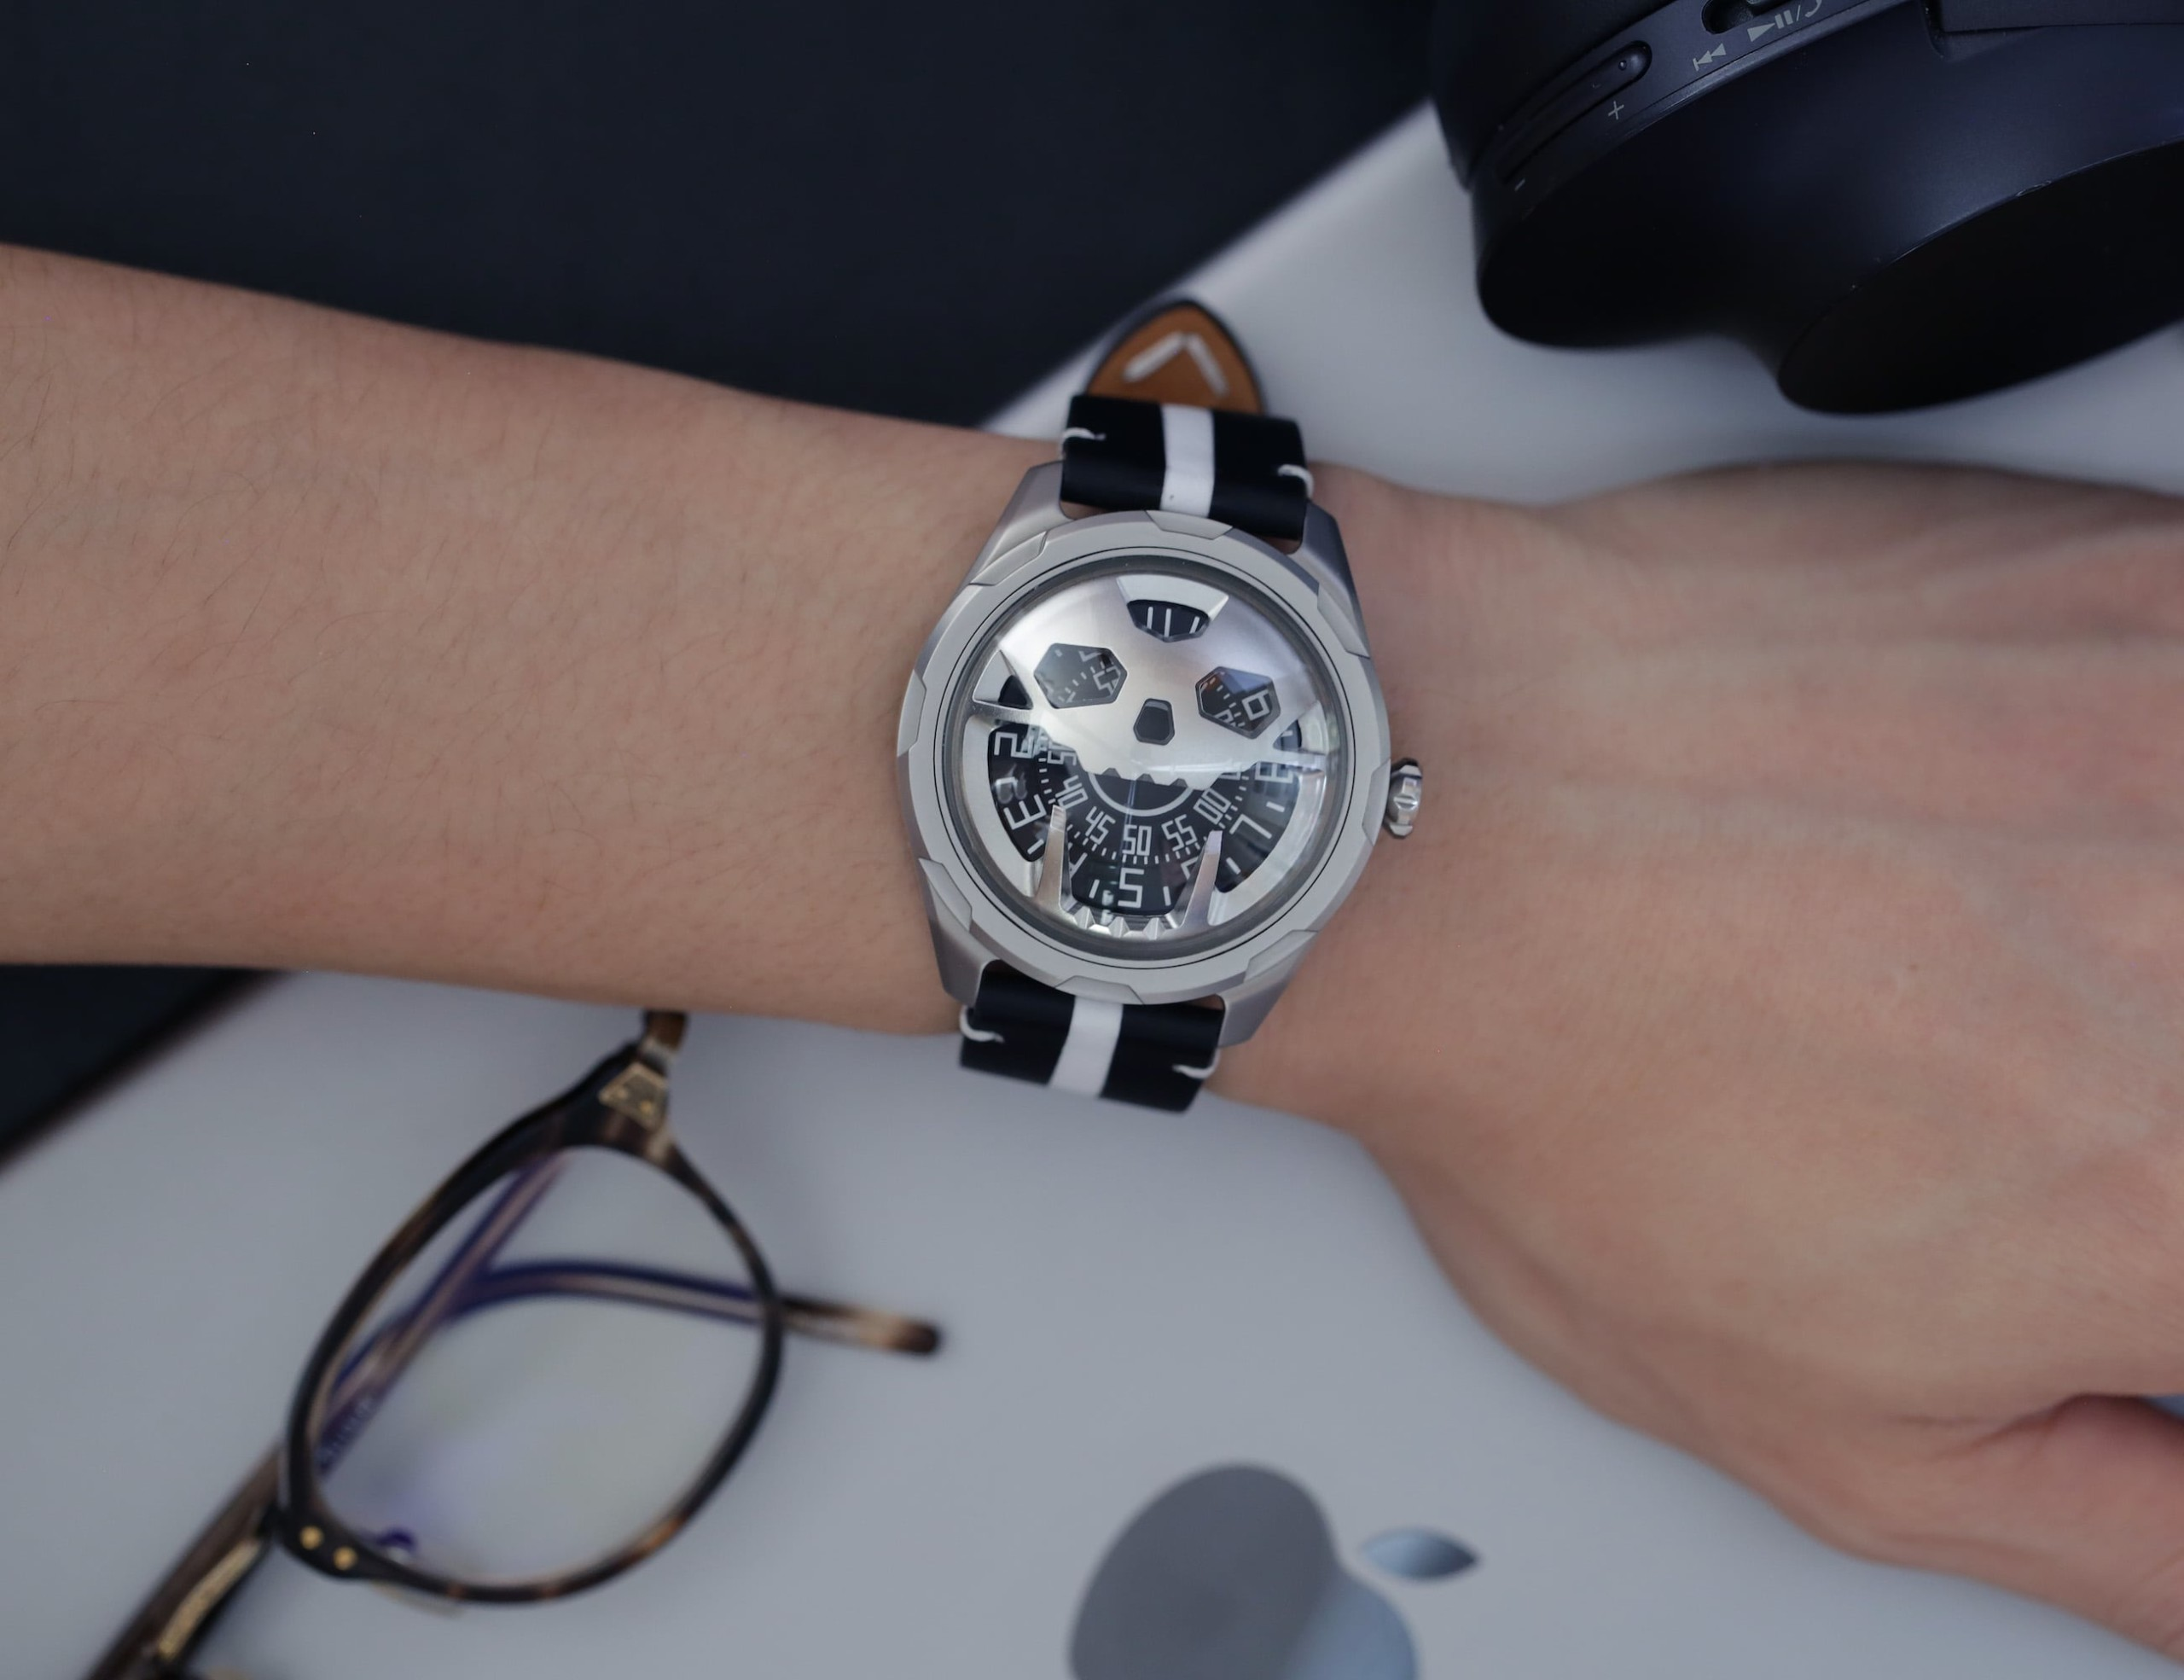 AISION Stereoscopic Skull Watch reminds you to pursue new passions